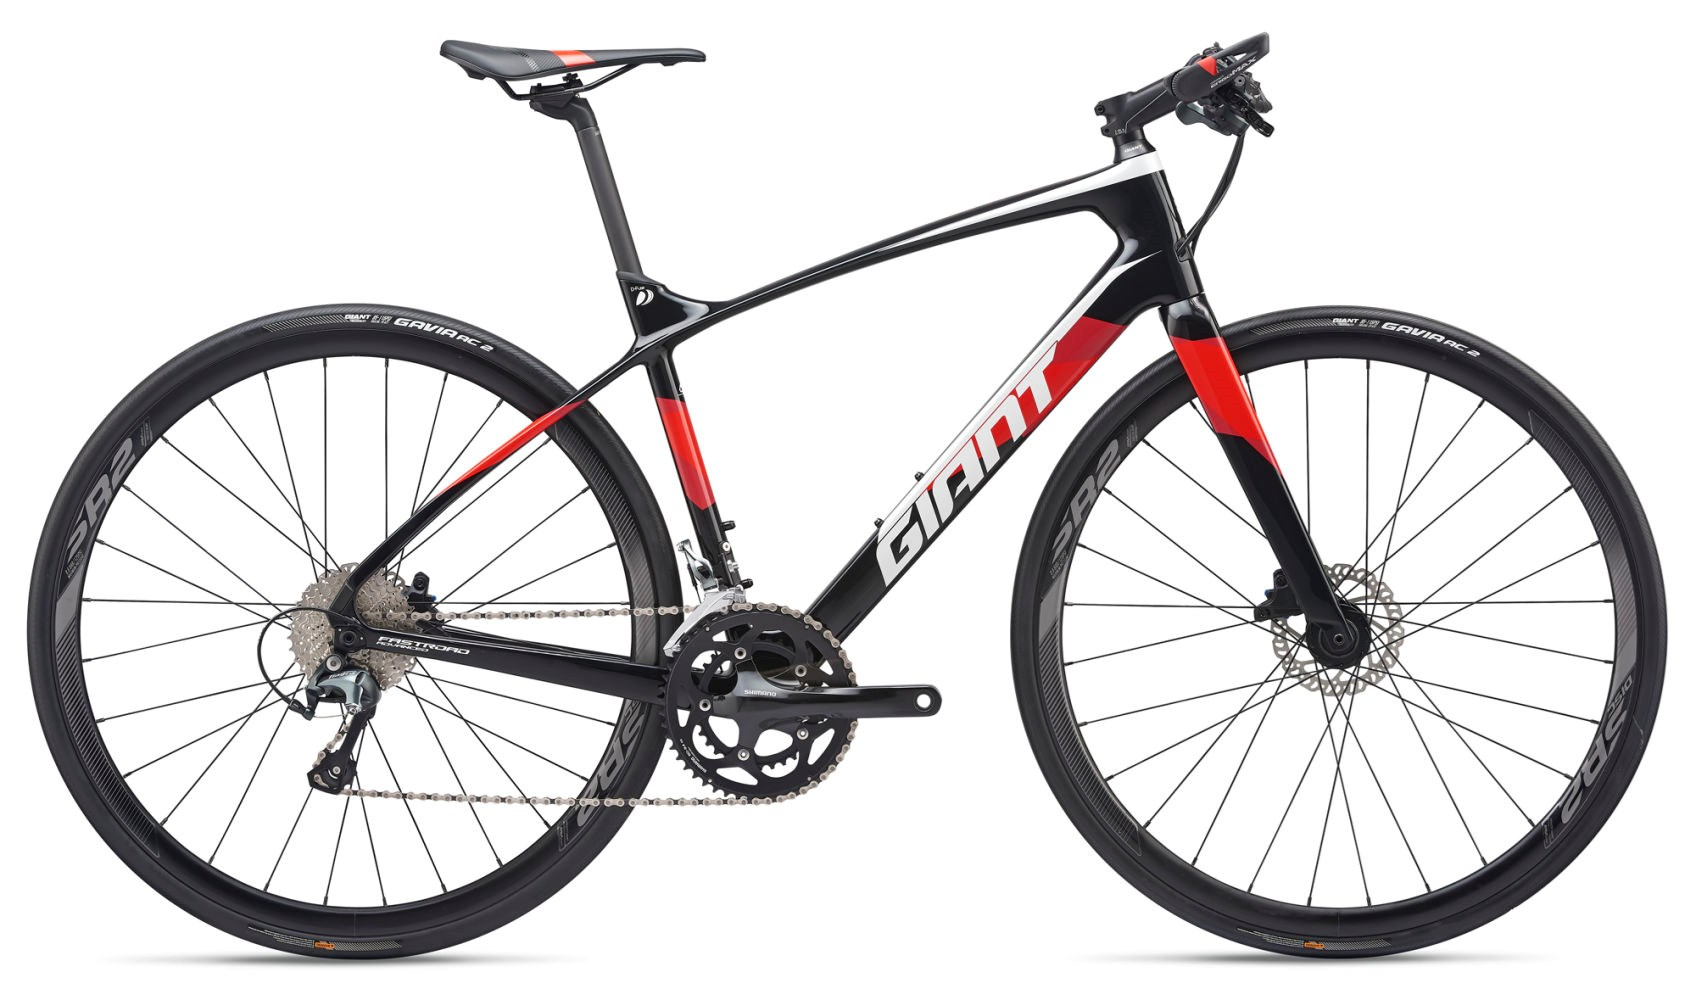 2019 Giant FastRoad Advanced 2 Carbon Mens Flat bar Road